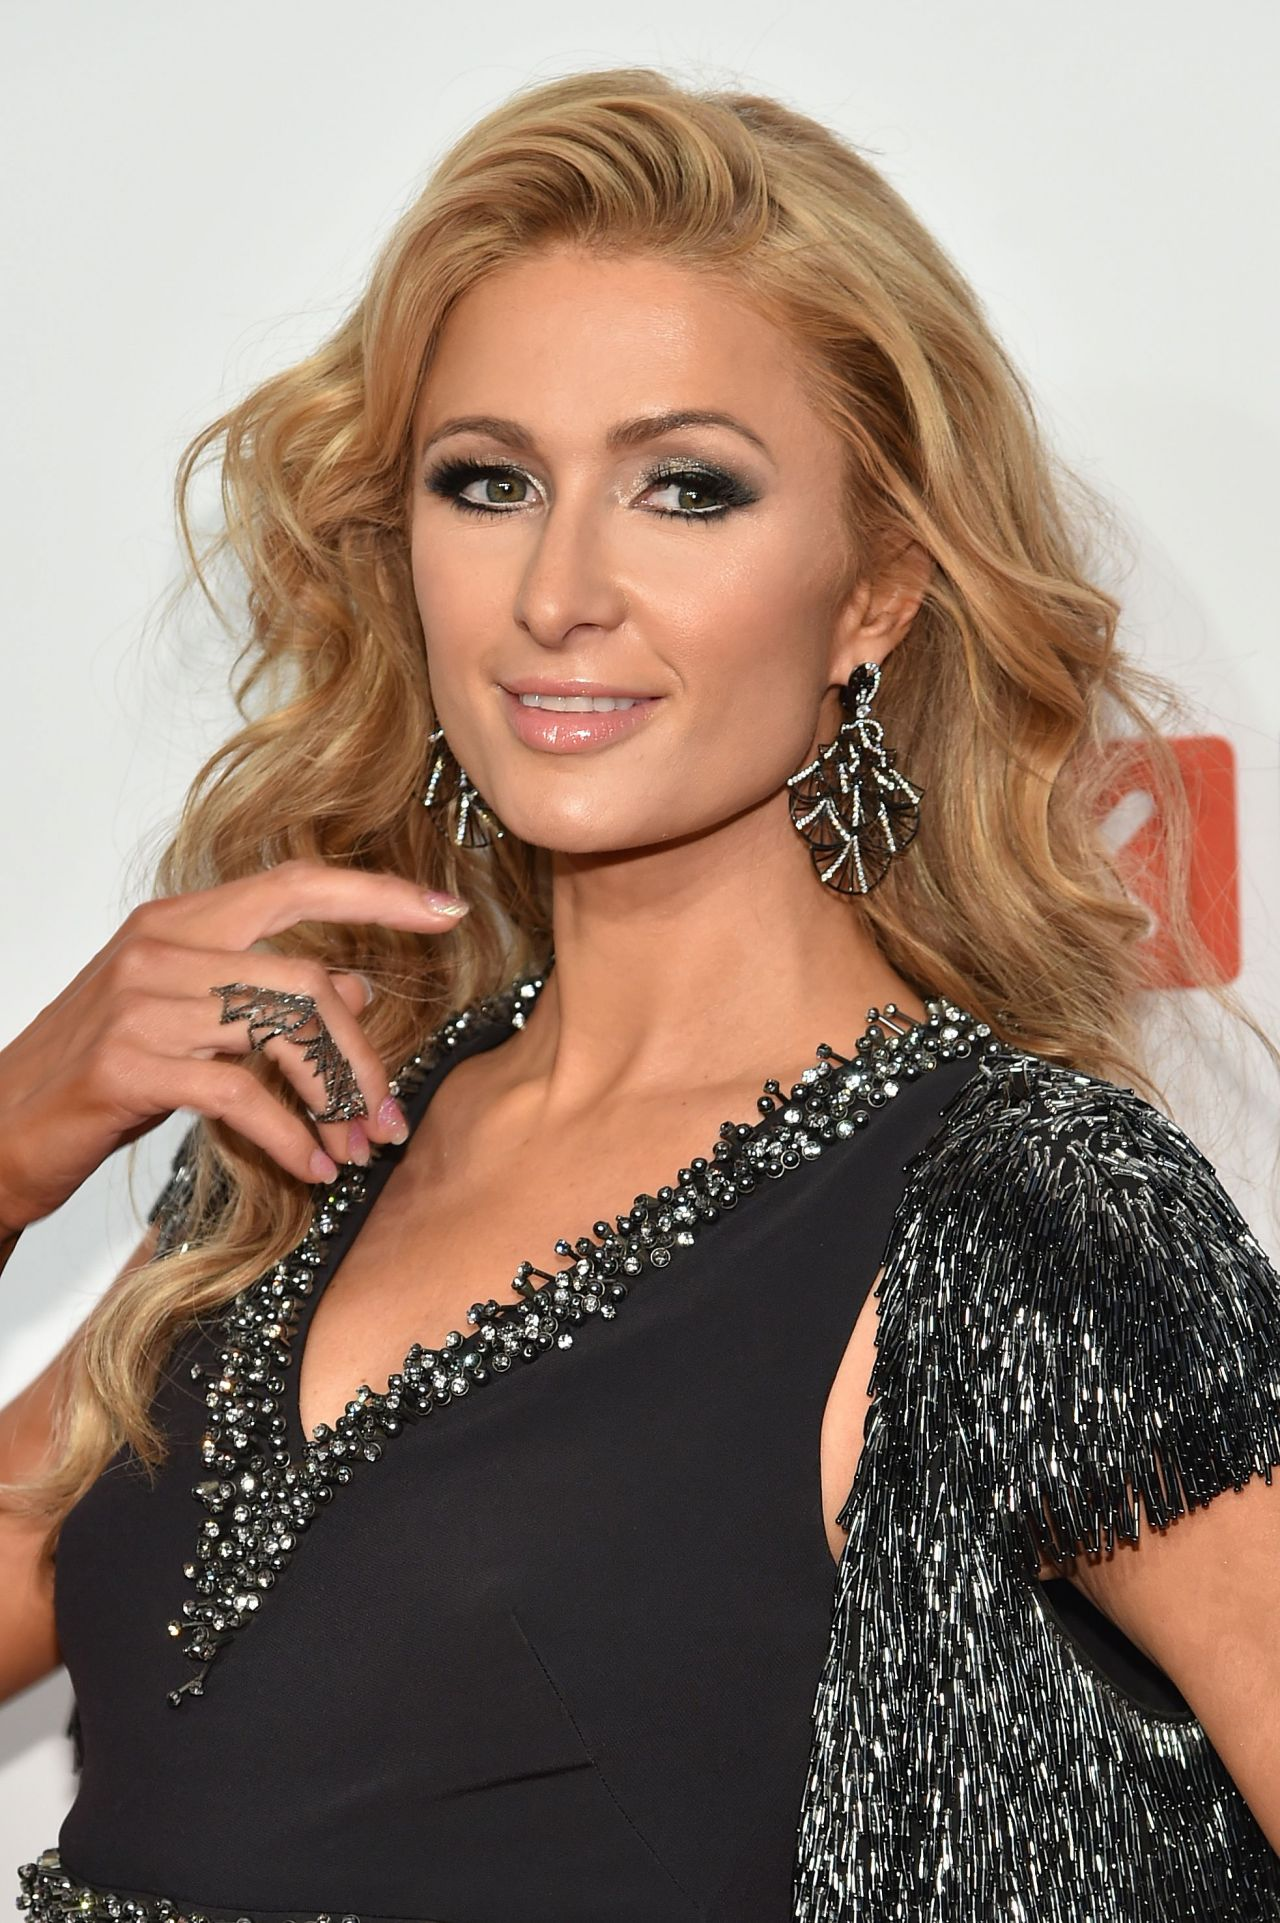 Paris Hilton – 2016 Delete Blood Cancer DKMS Gala in NYC 5/5/2016 Paris Hilton